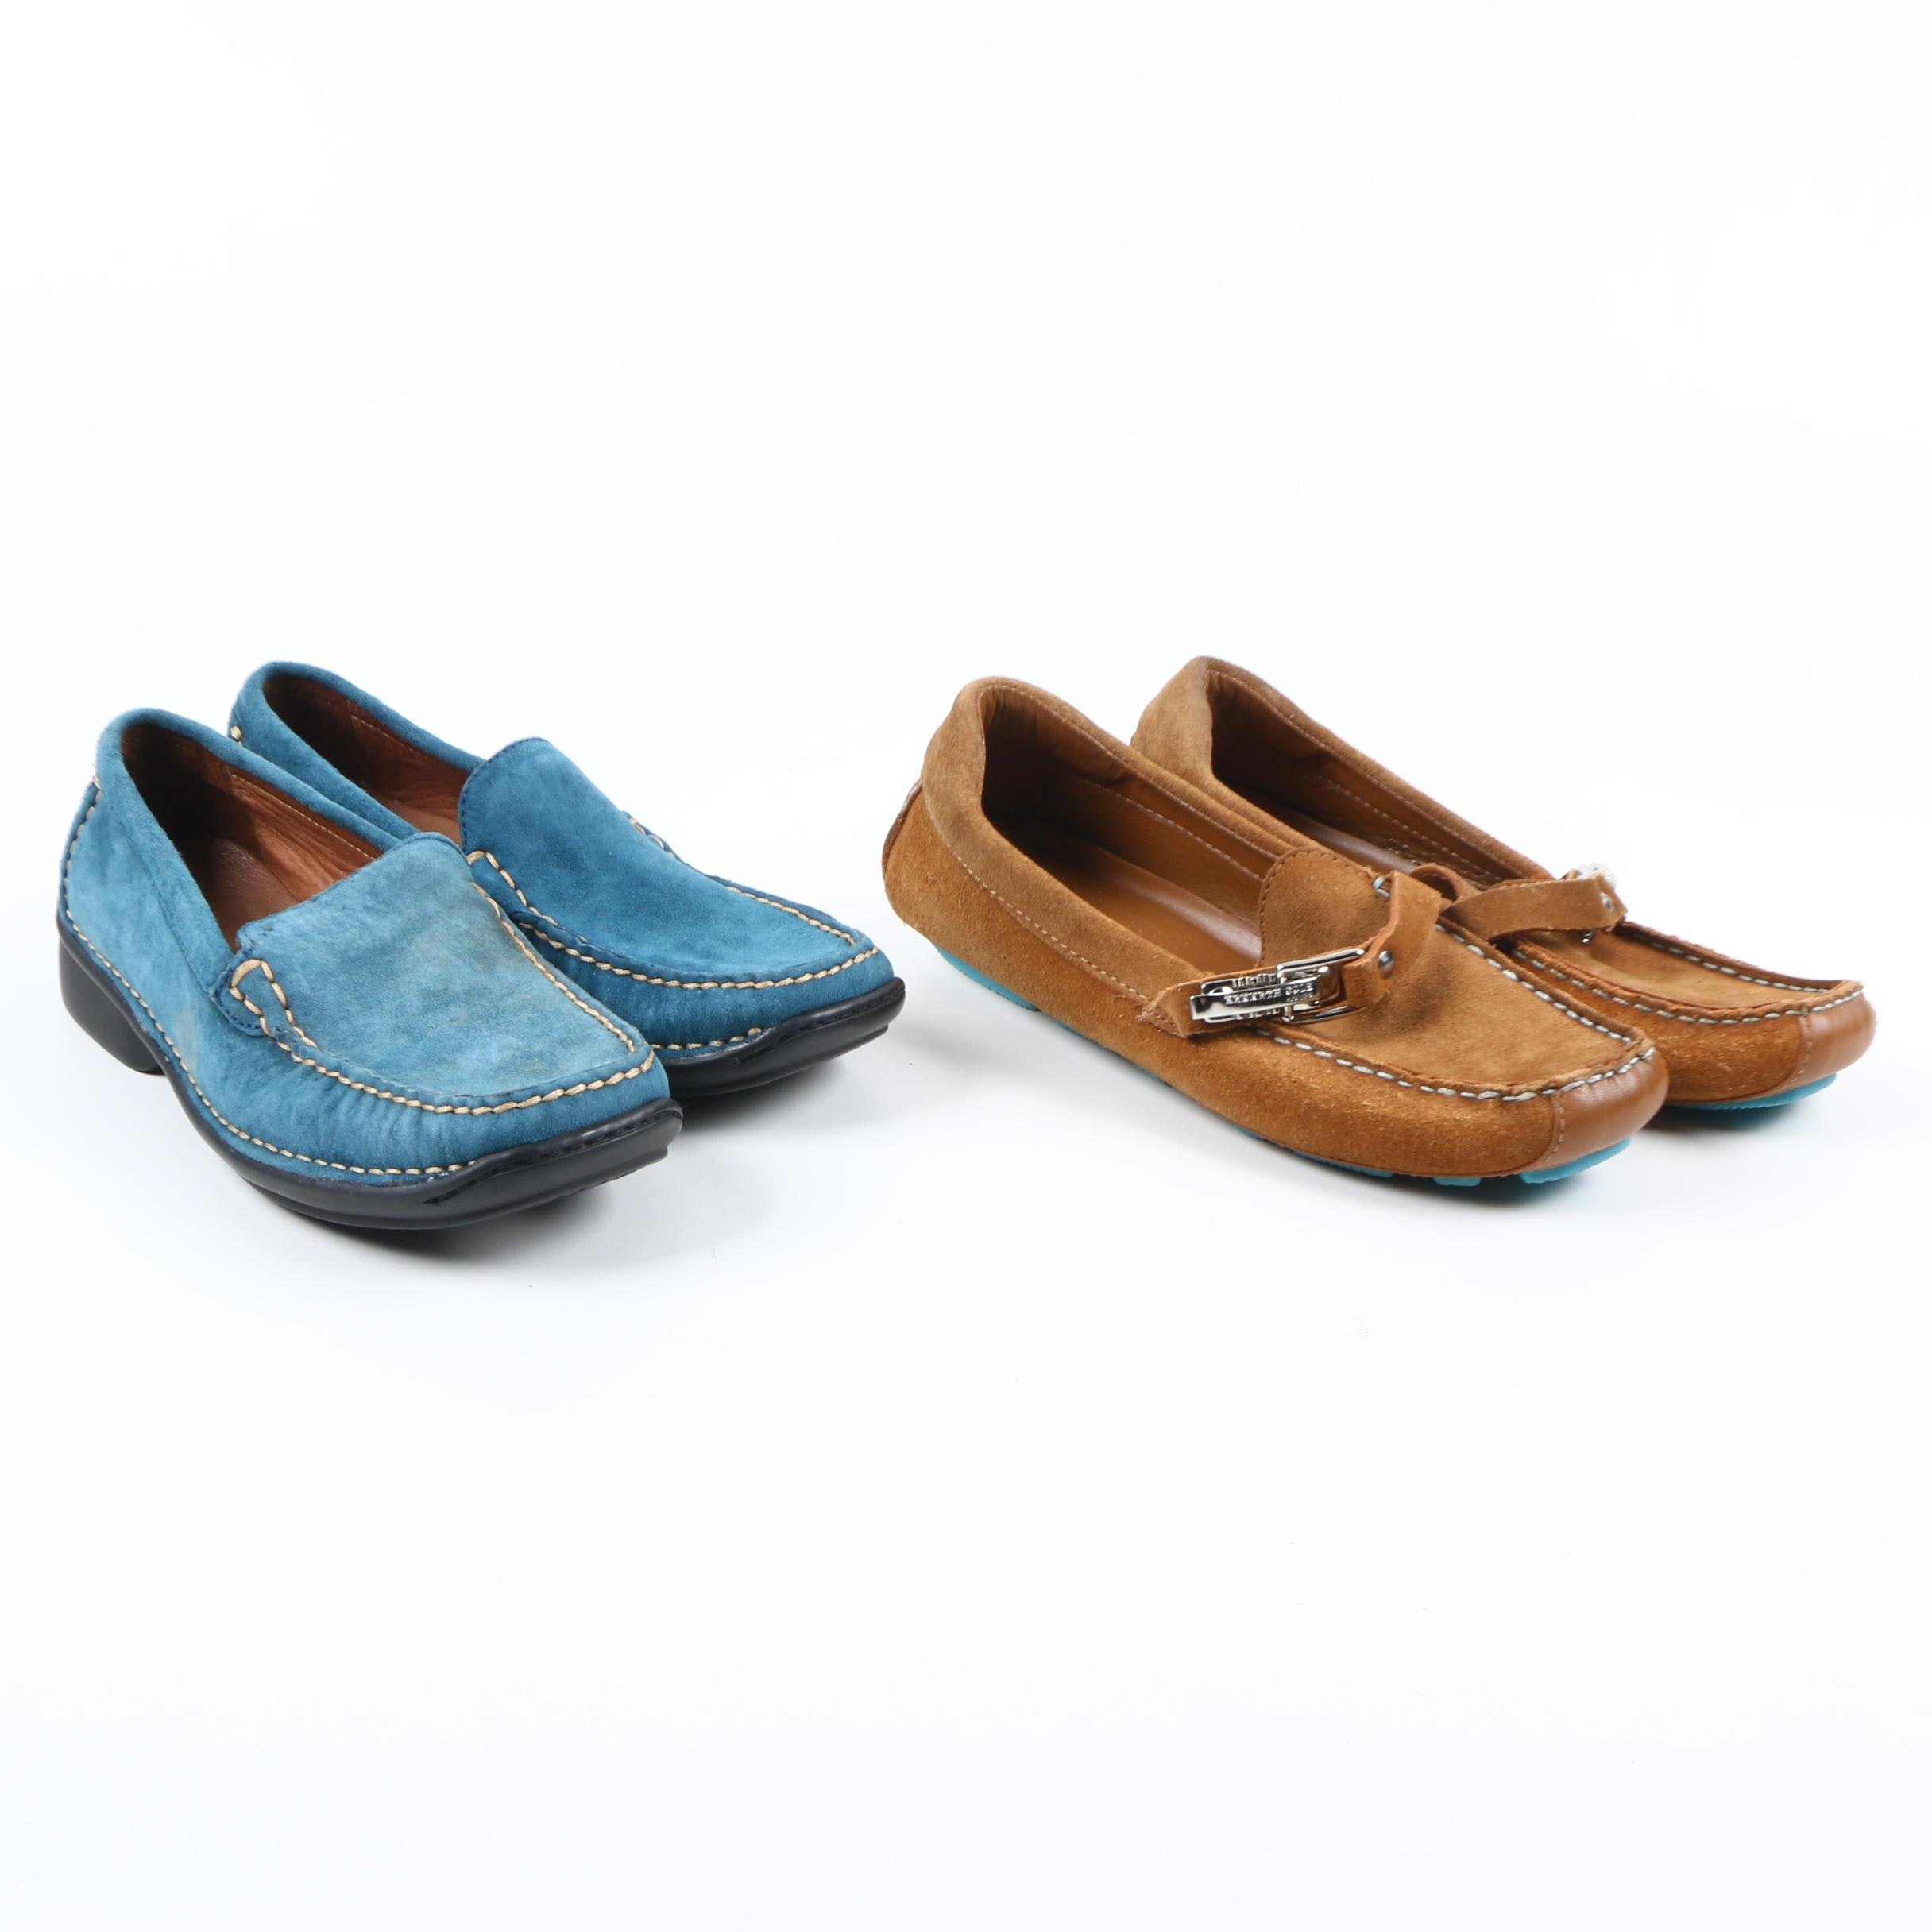 Women's Suede Loafers Including Kenneth Cole and Hush Puppies